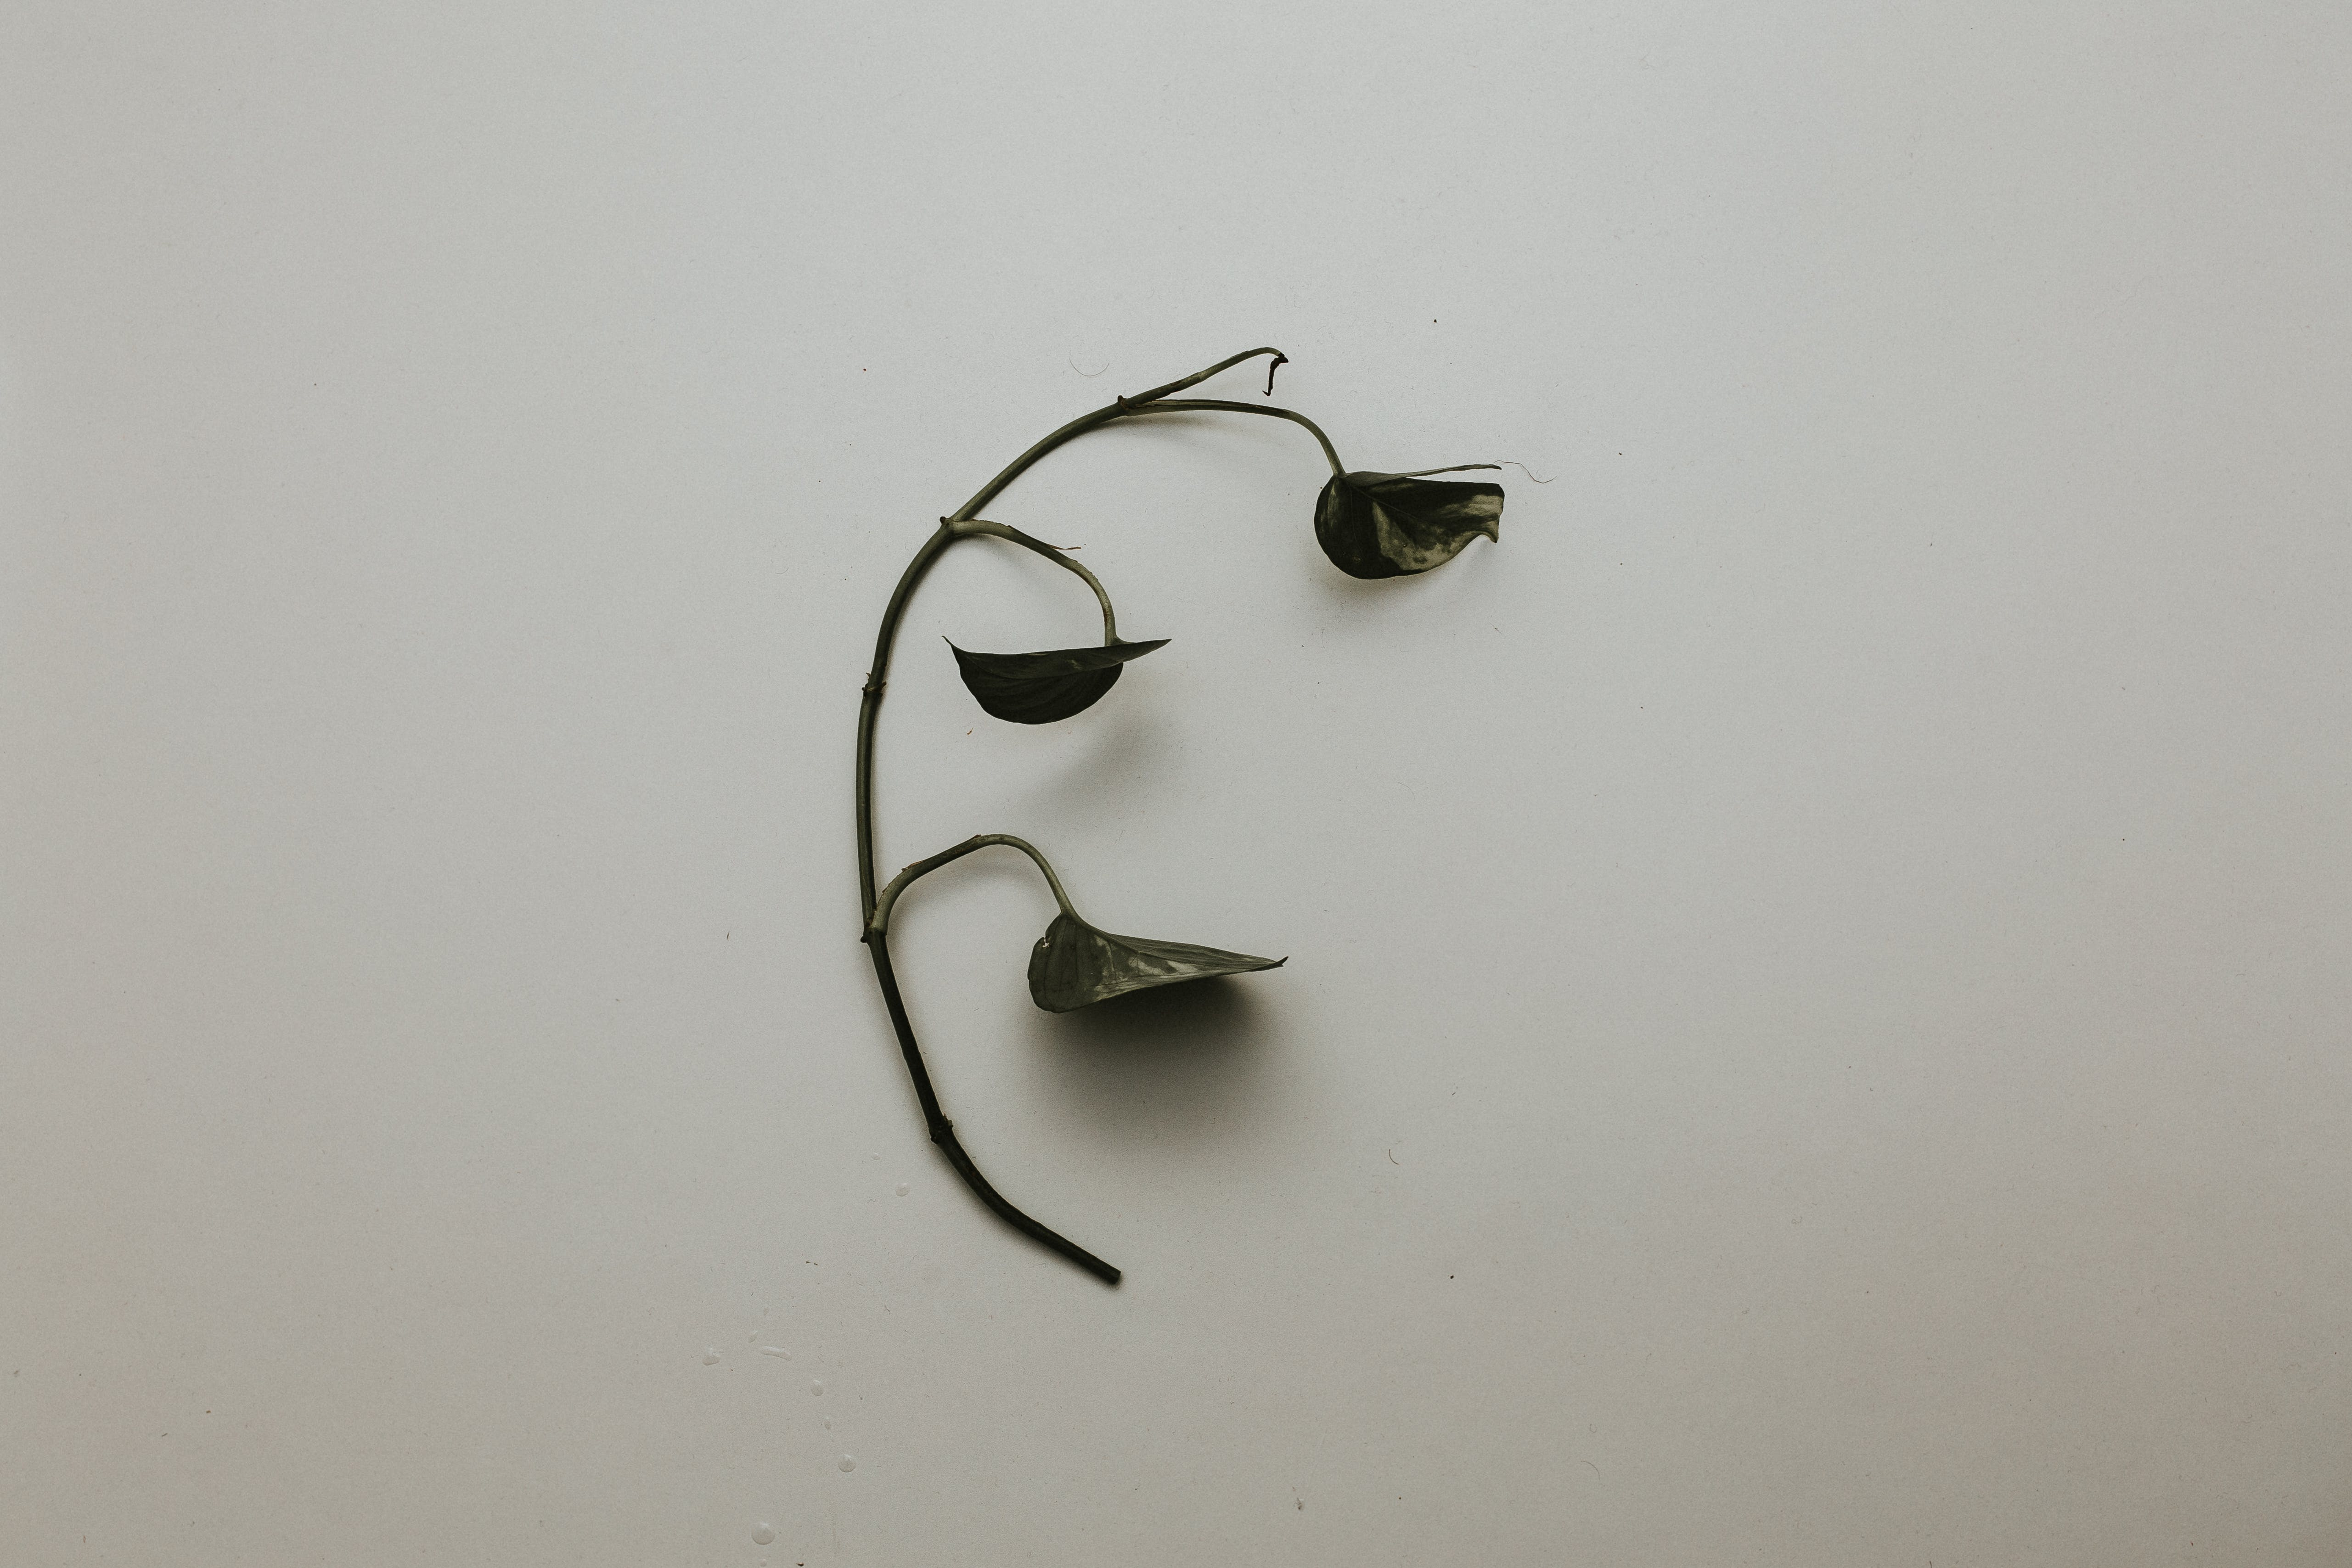 Black Leaf With Branch on White Painted Wall